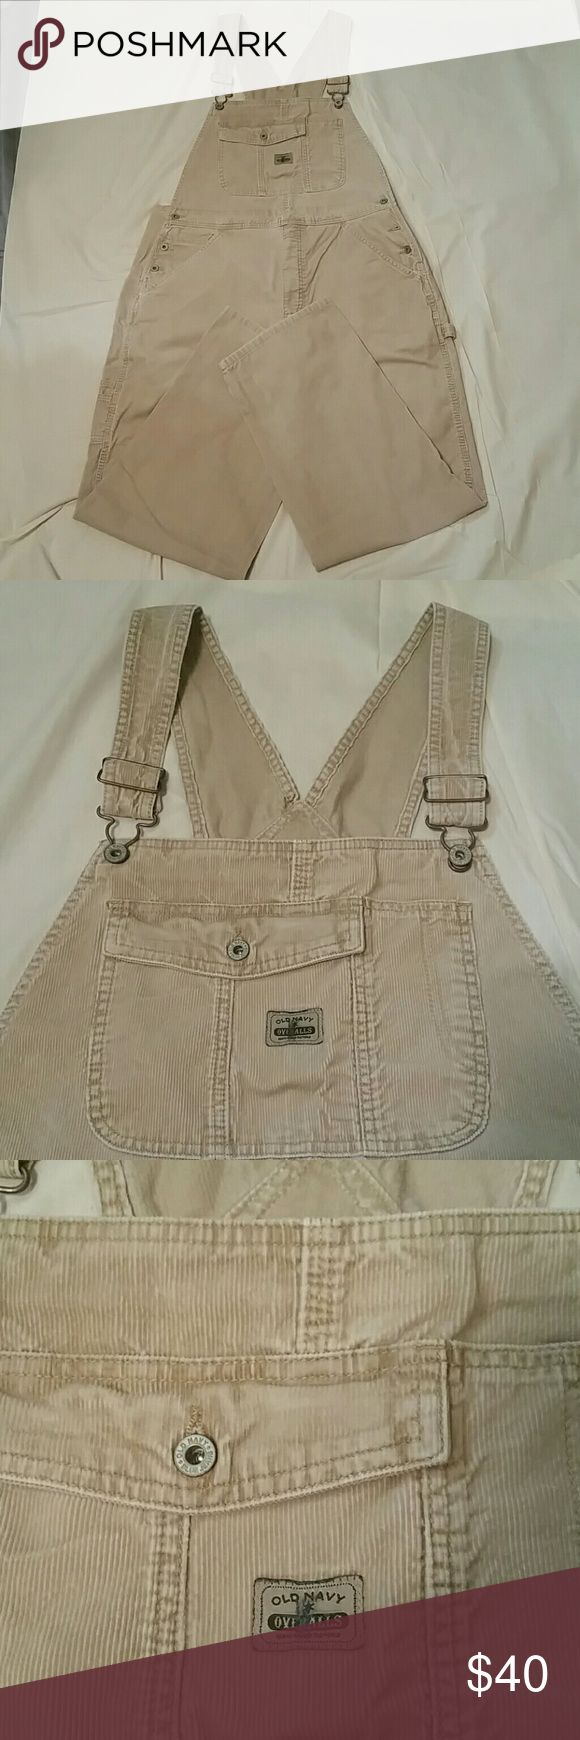 Overalls by Old Navy Blue Jeans Corduroy overalls,  like new. Size Large. Inseam 31-1/2 inches, waist 38 inches,  hips 48 inches. Old Navy Jeans Overalls